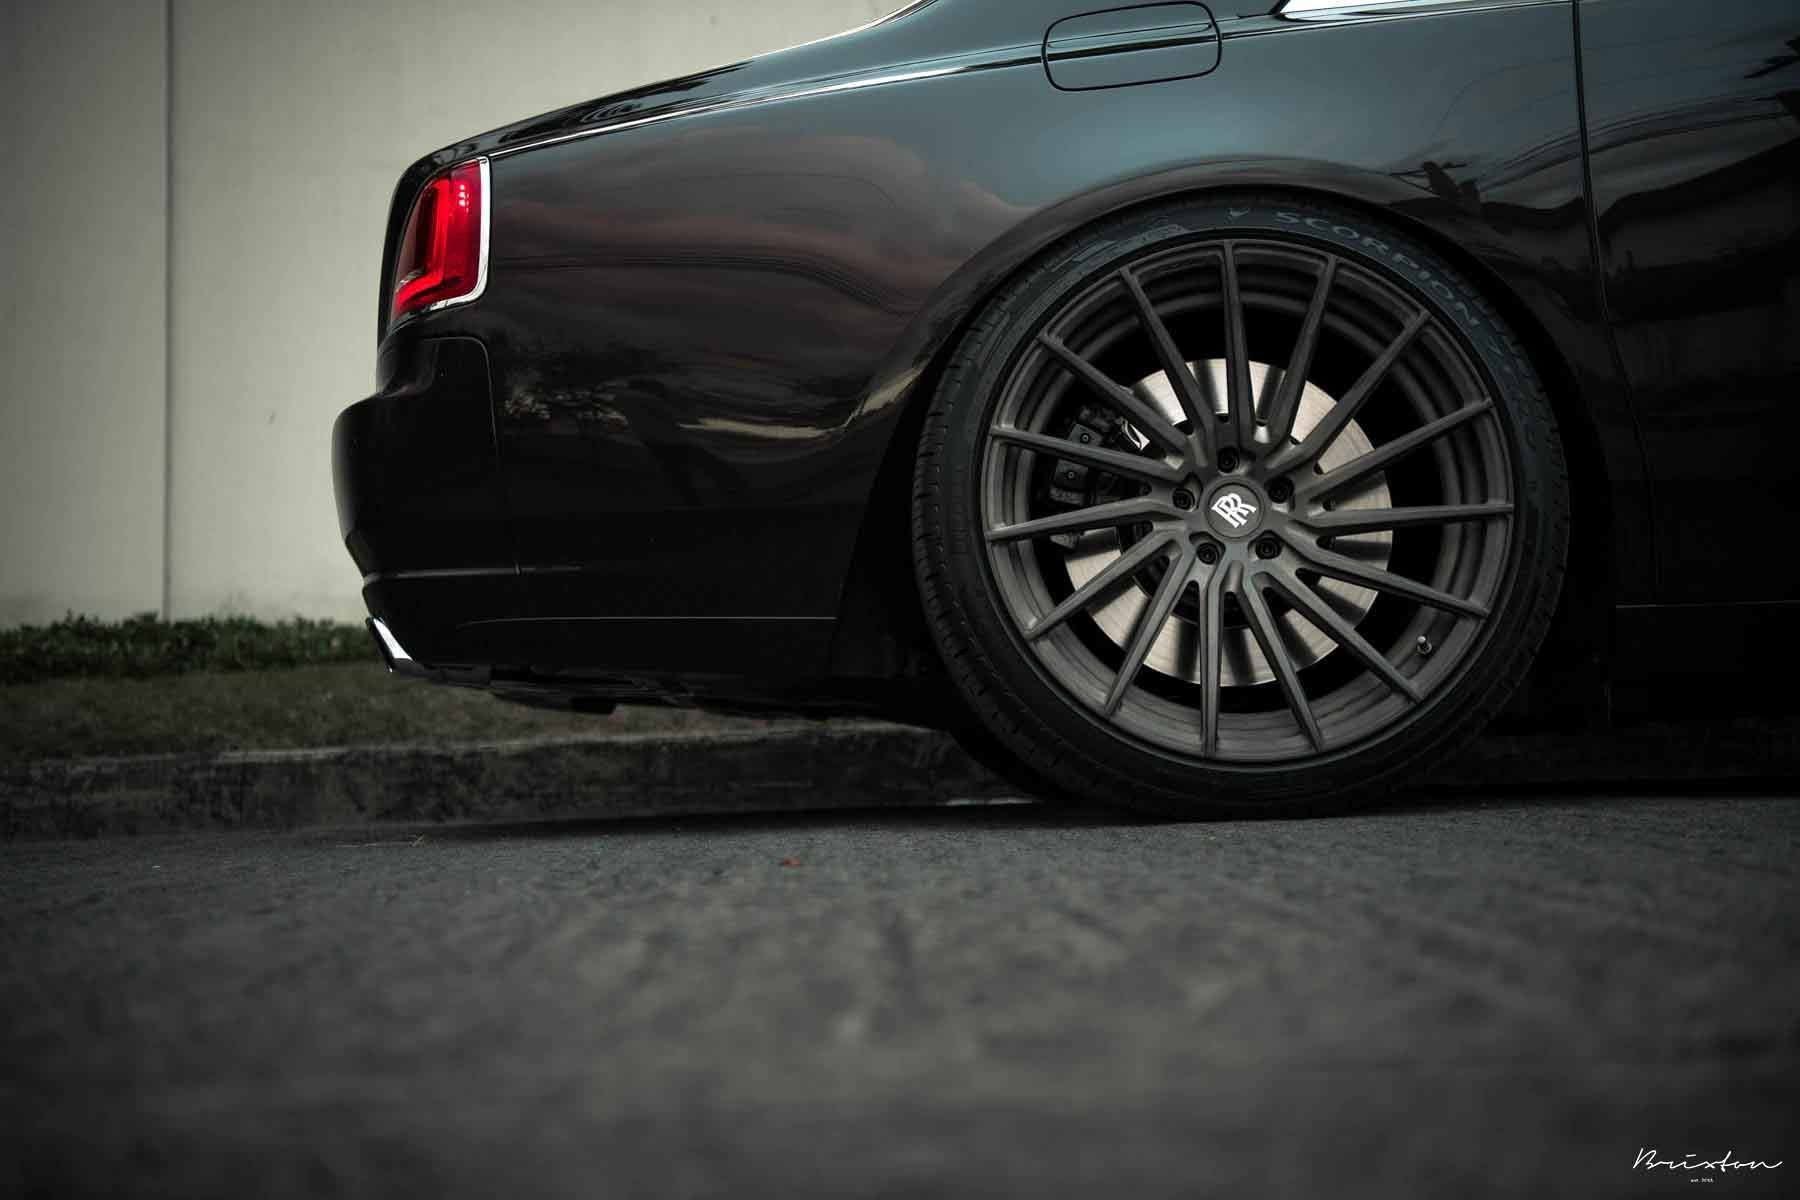 images-products-1-2908-232975196-black-rolls-royce-ghost-brixton-forged-r15-ultrasport-brushed-double-tint-satin-concave-forged-w.jpg